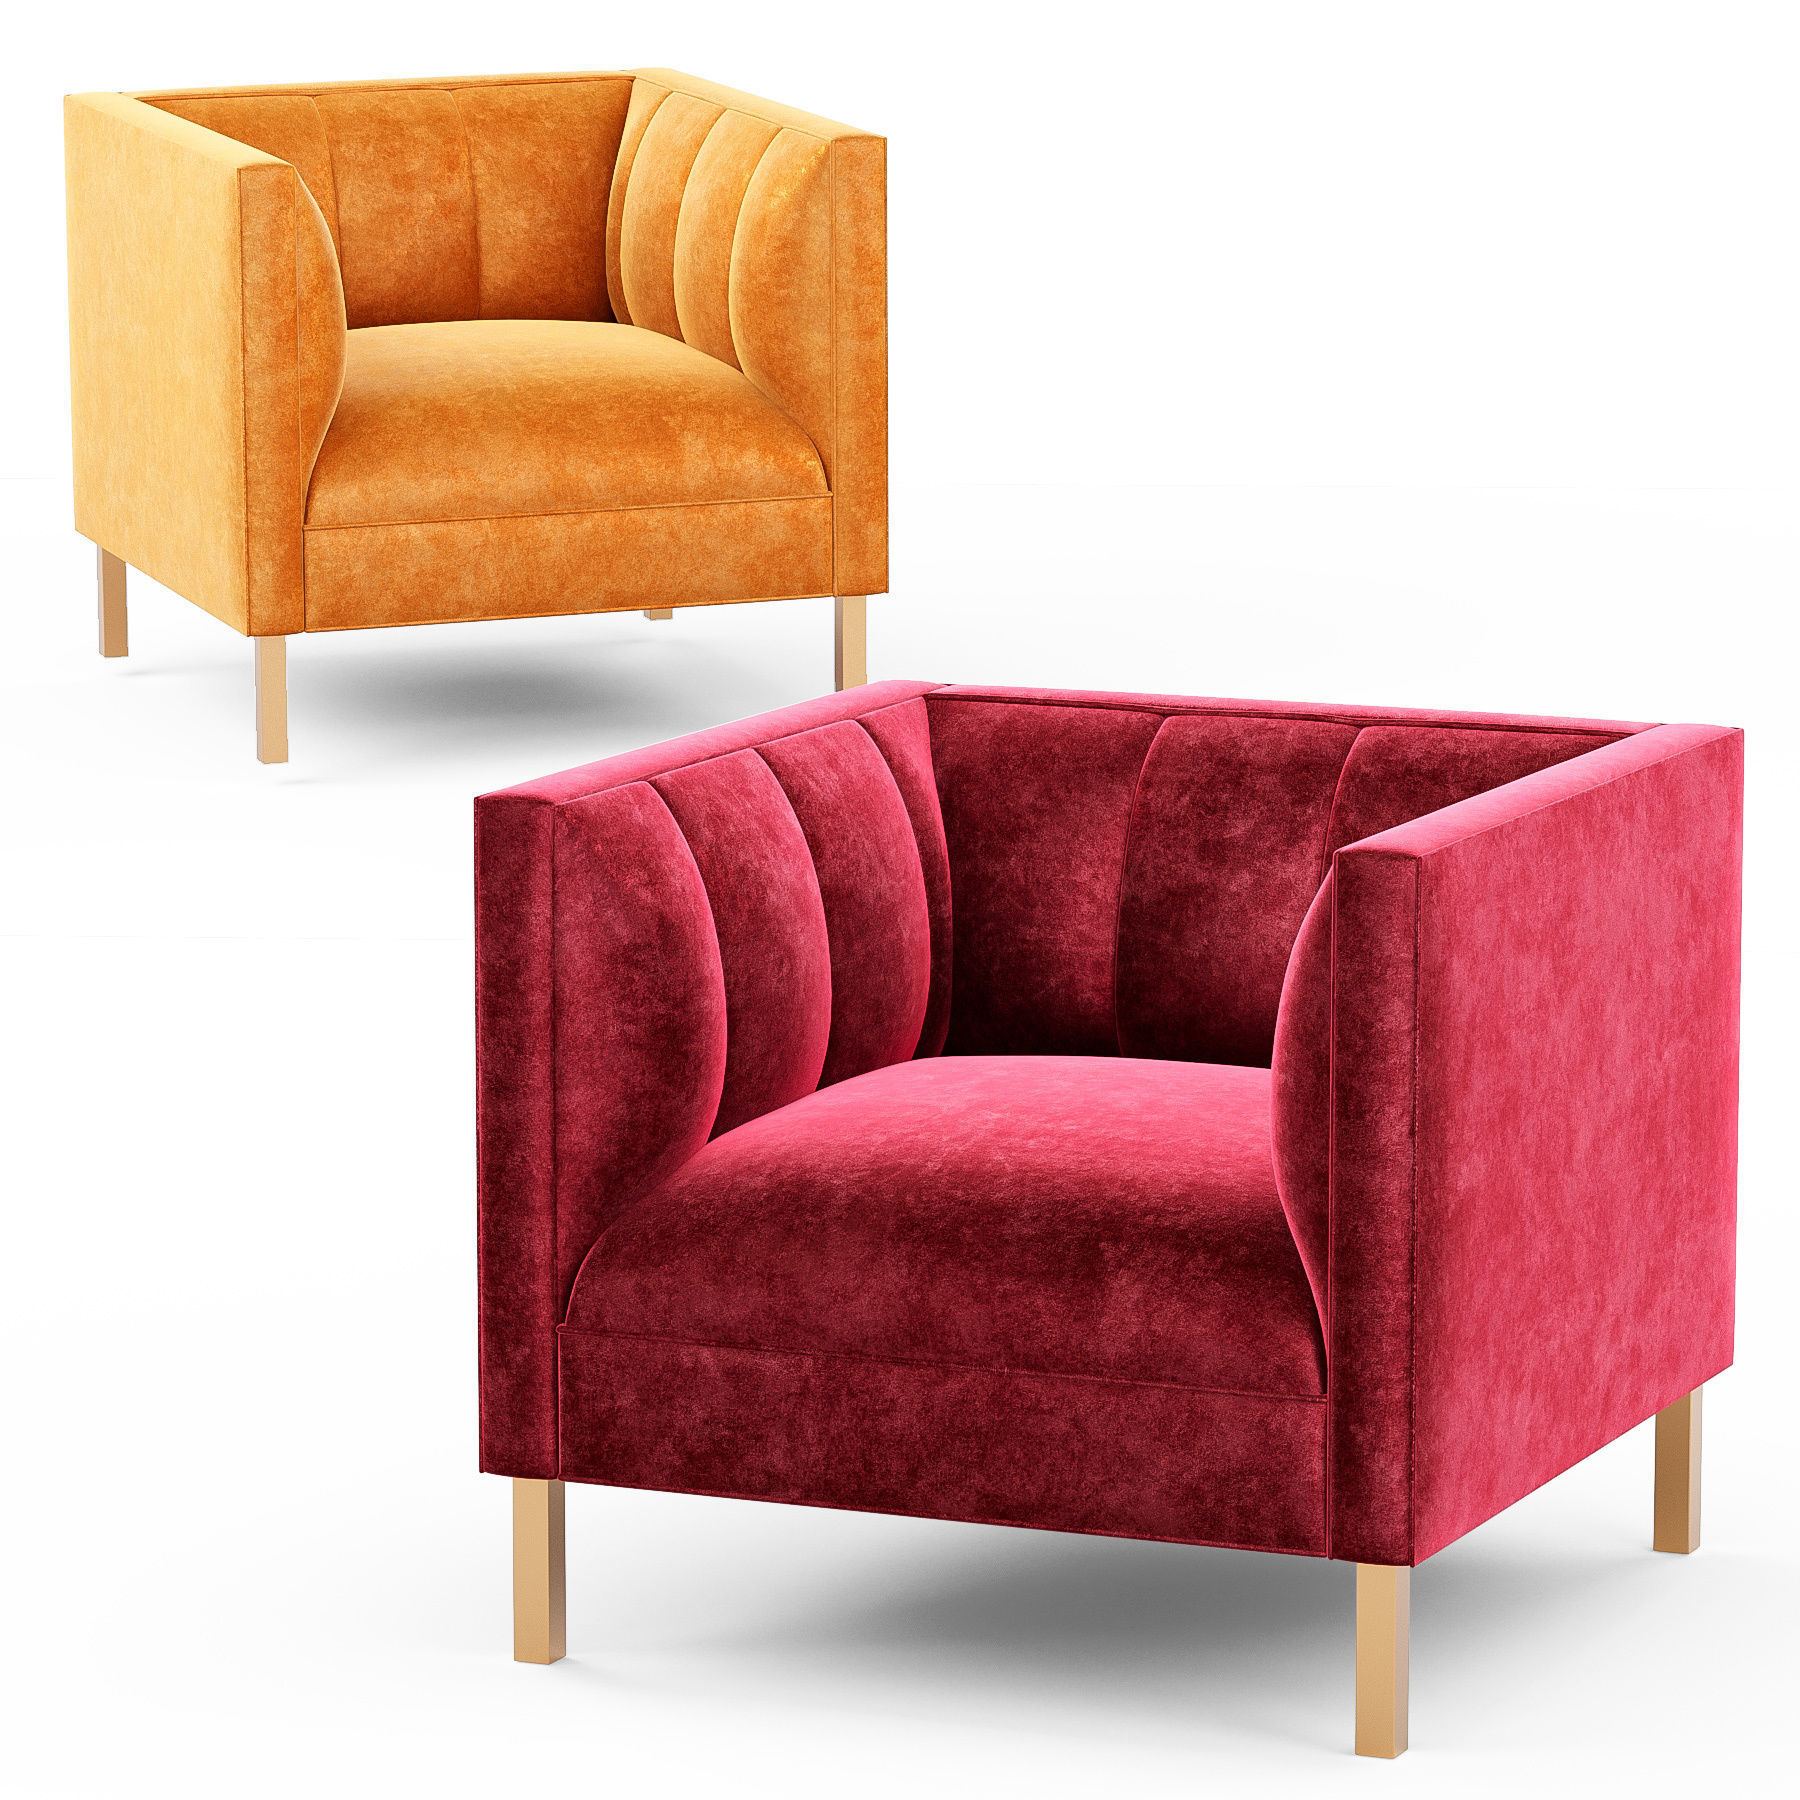 Picture of: 3d Model Crate And Barrel Chloe Chair Cgtrader